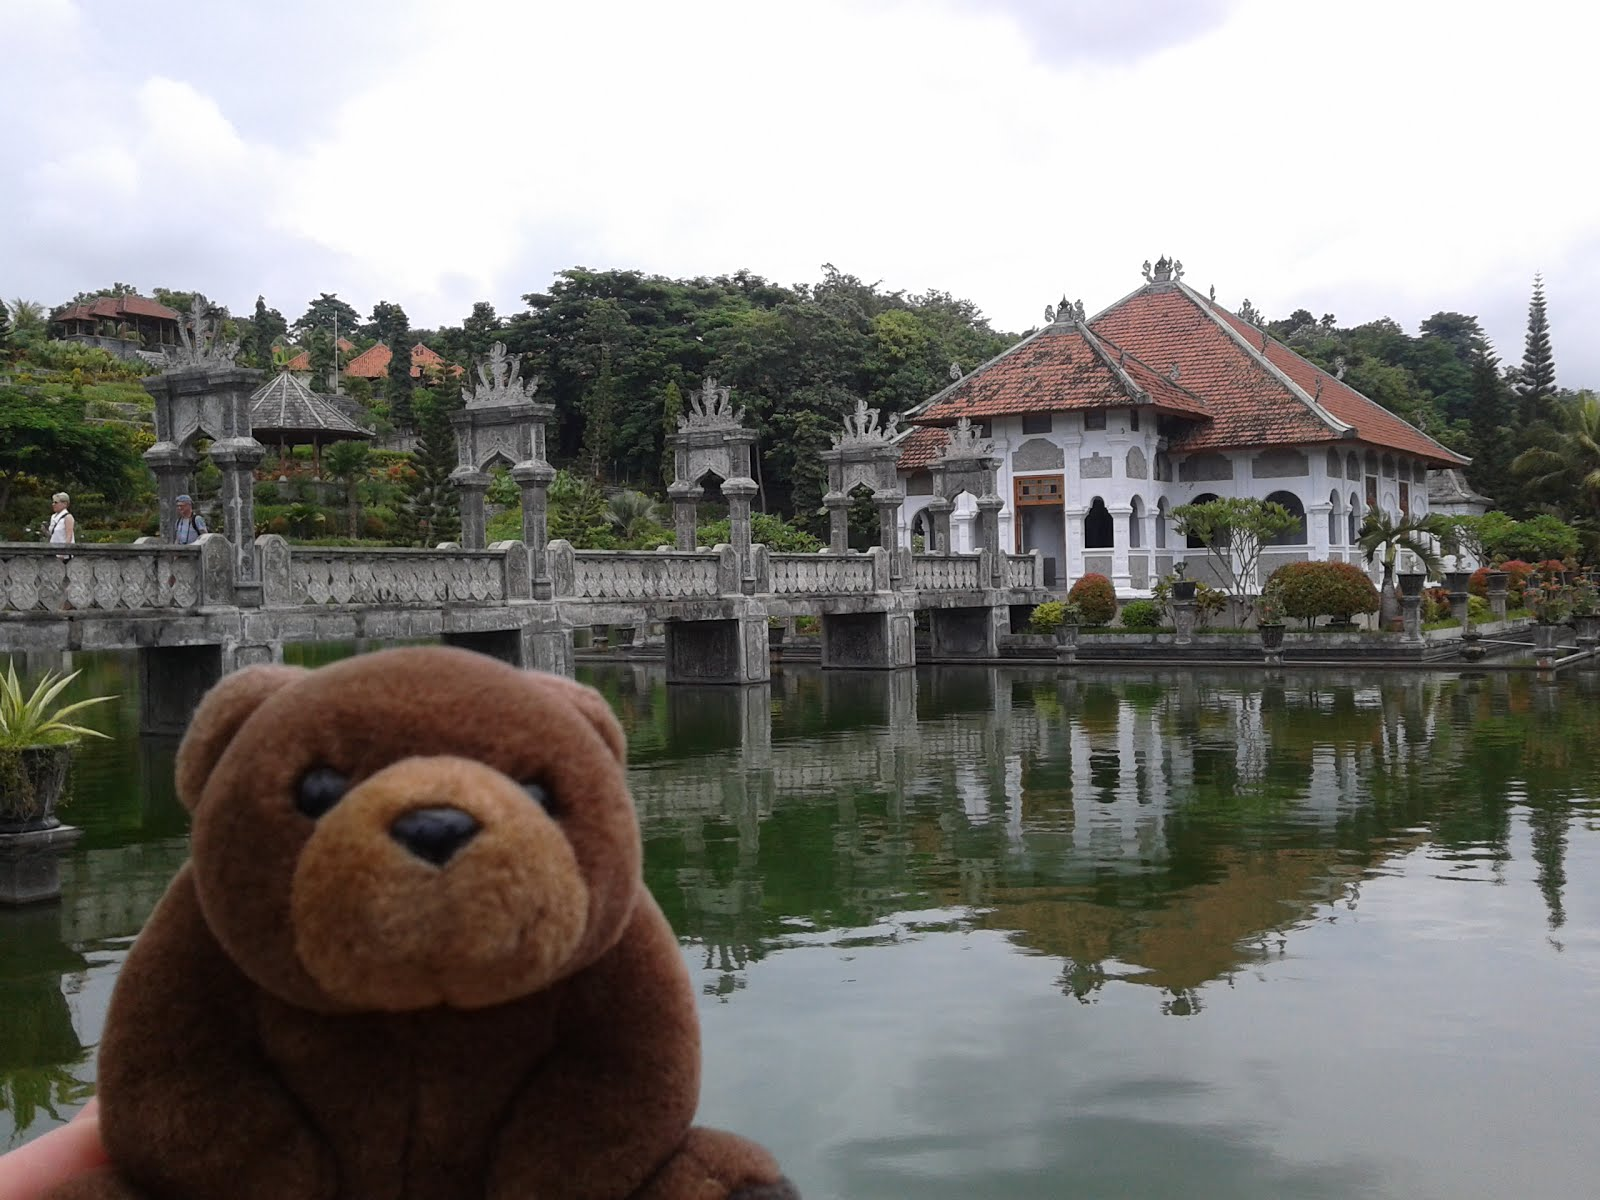 Teddy in Water Palace, Seraya, Indonesia